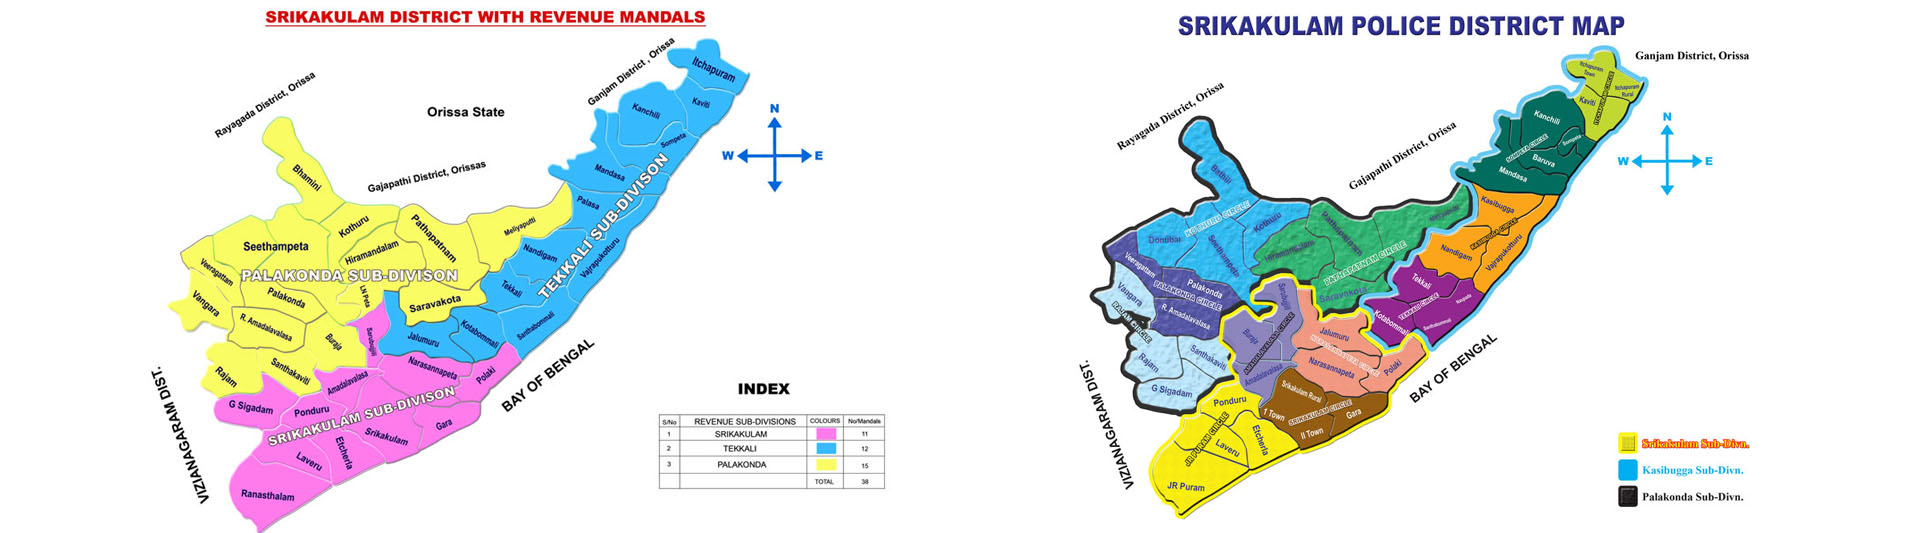 Srikakulam District Revenue Mandals and Police Map